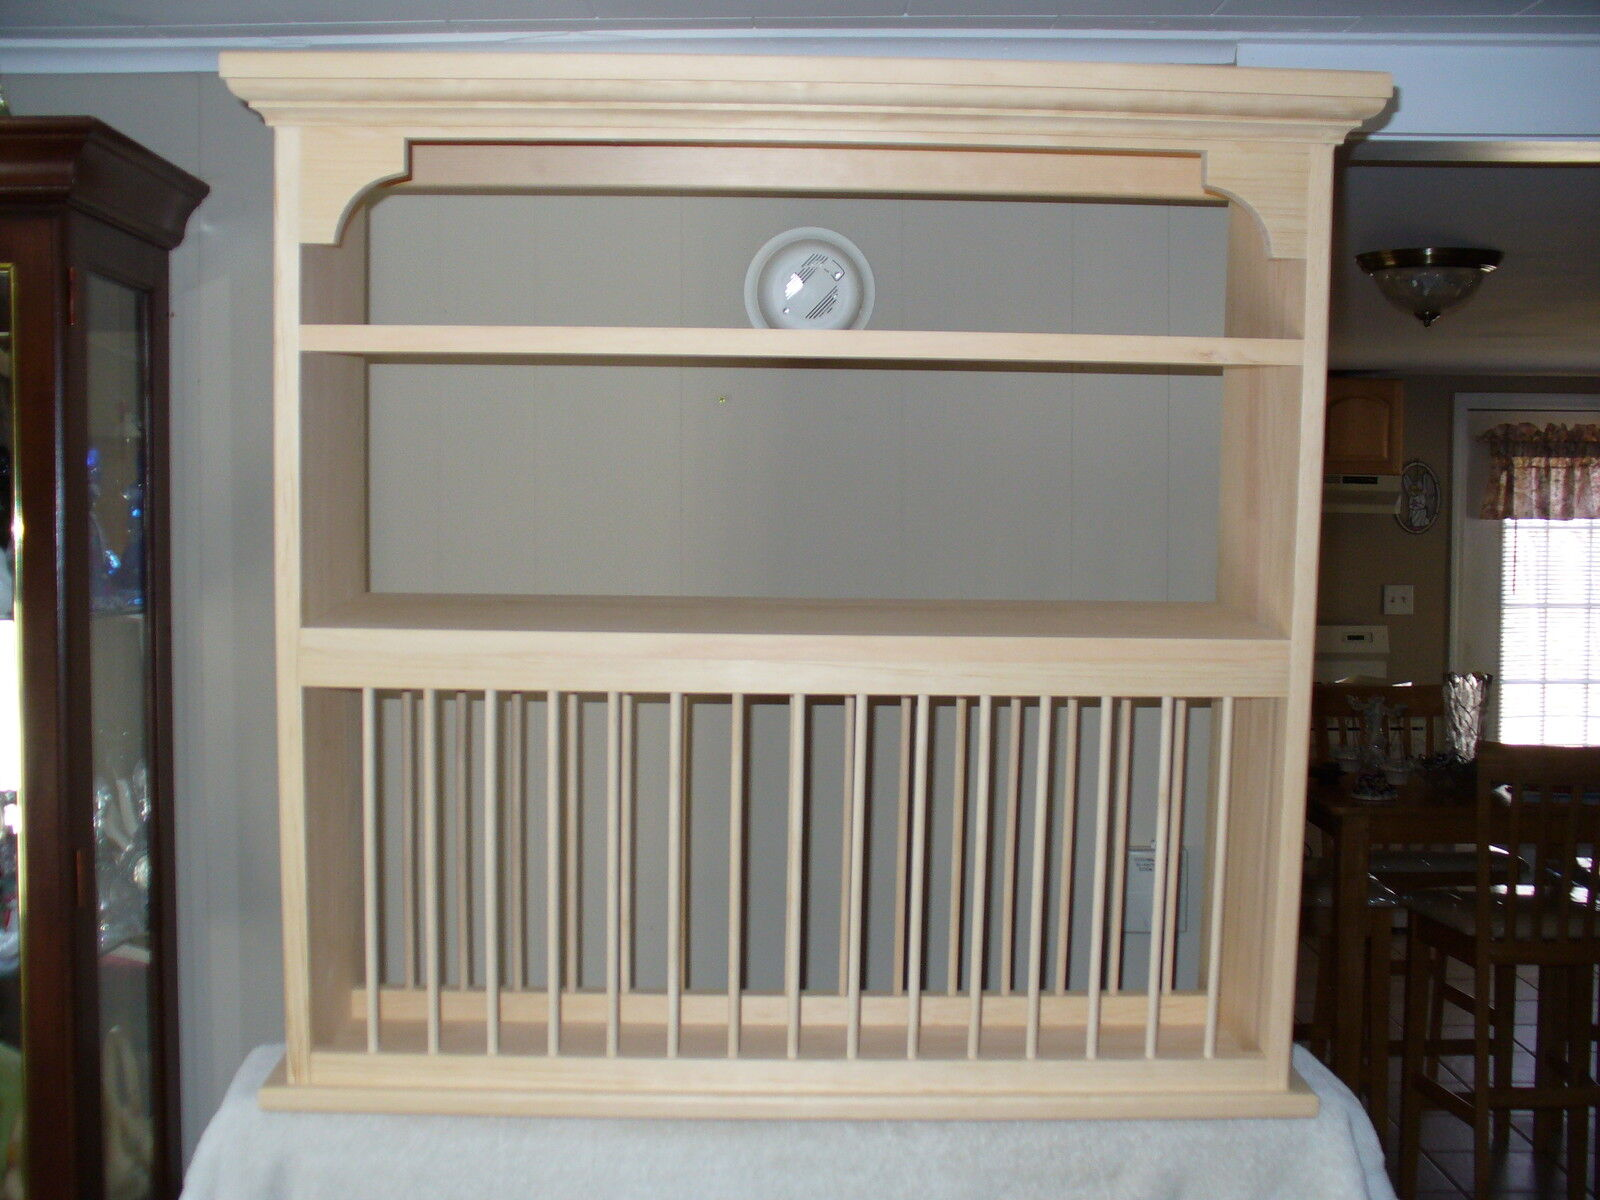 Dish Rack For Kitchen Cabinet Organizer Crown Moulding Wood Cup Plate Dish Rack Art Shelf